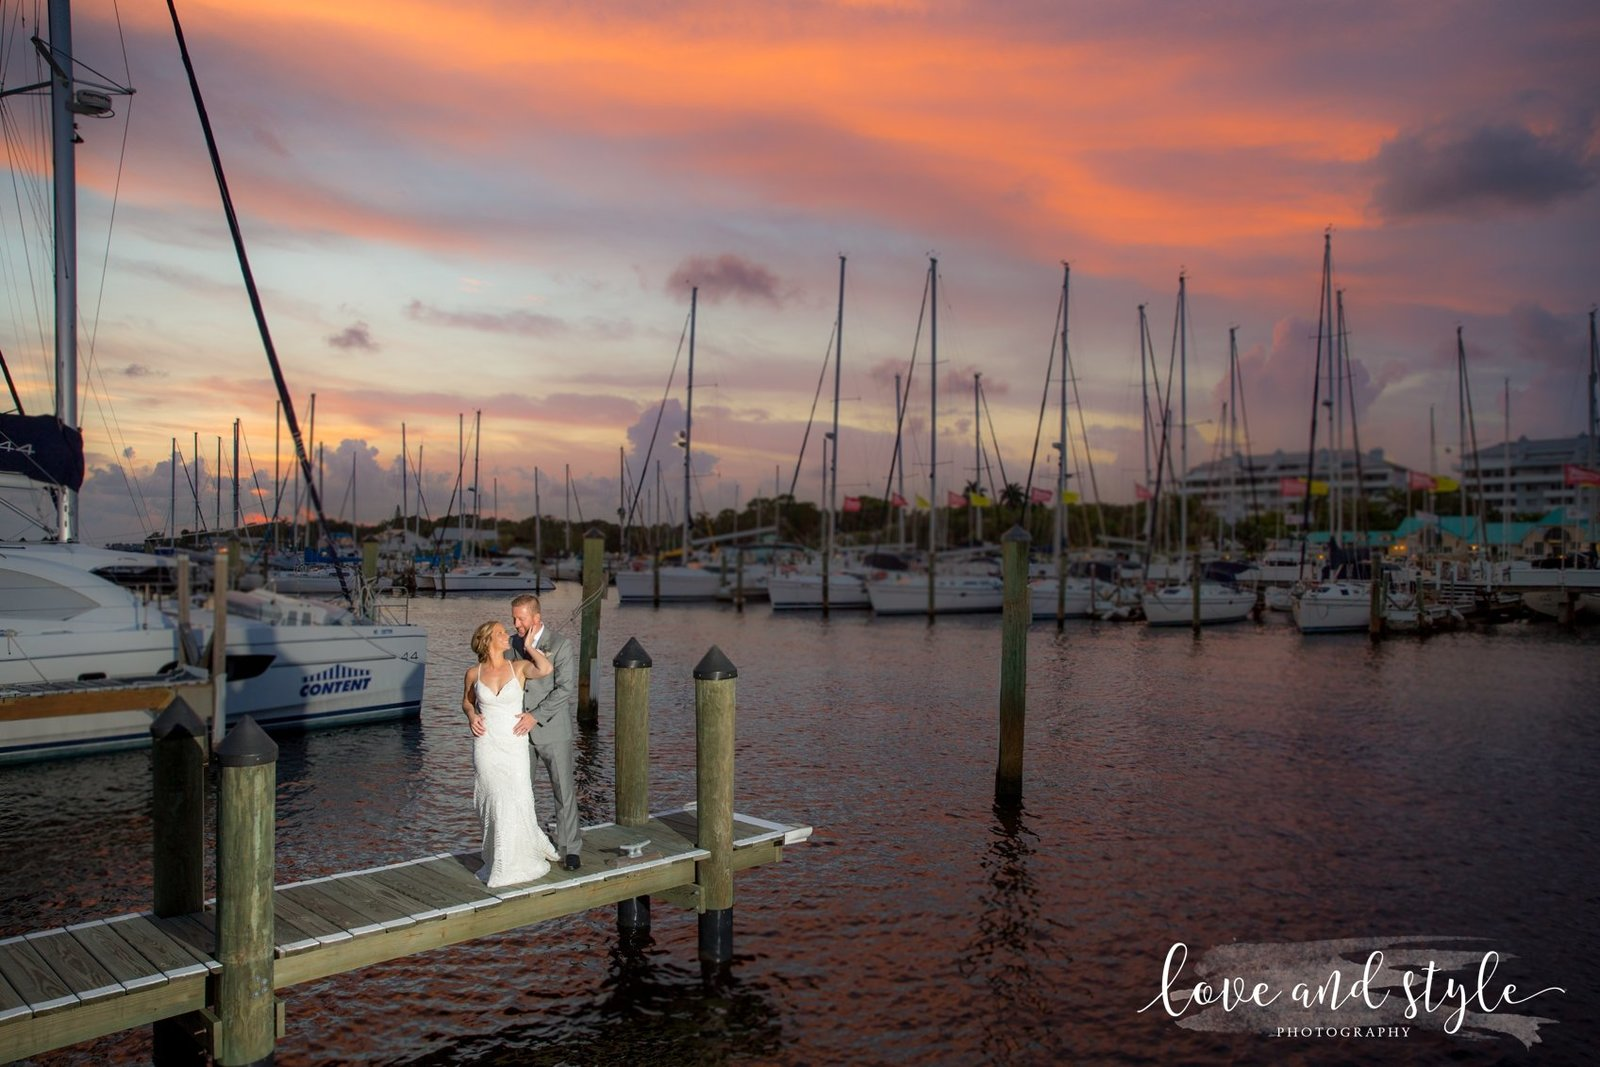 Riverhouse Reef and Grill Wedding Photography, bride and groom portrait on the dock with boats and sunset in the background